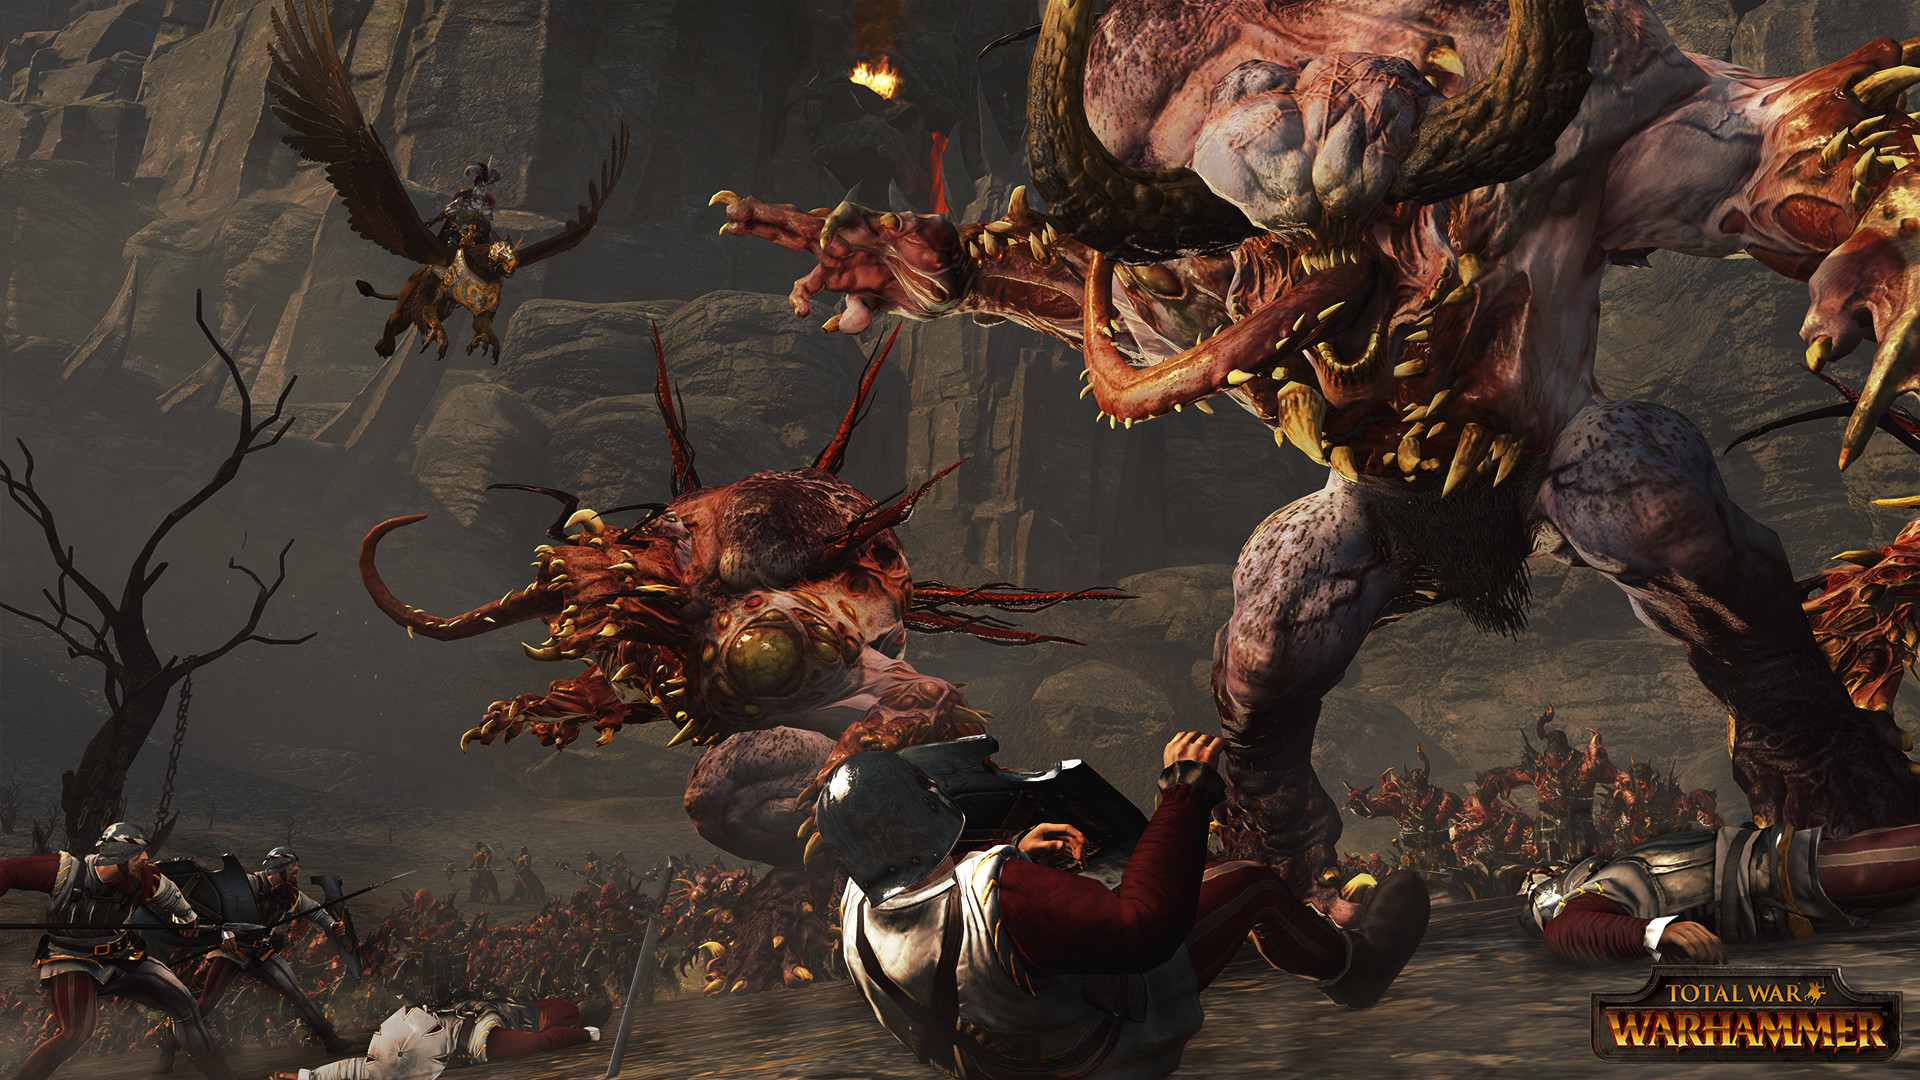 Deals For The Deal God – Total War Warhammer Limited Edition for £25 from  Jelly Deals